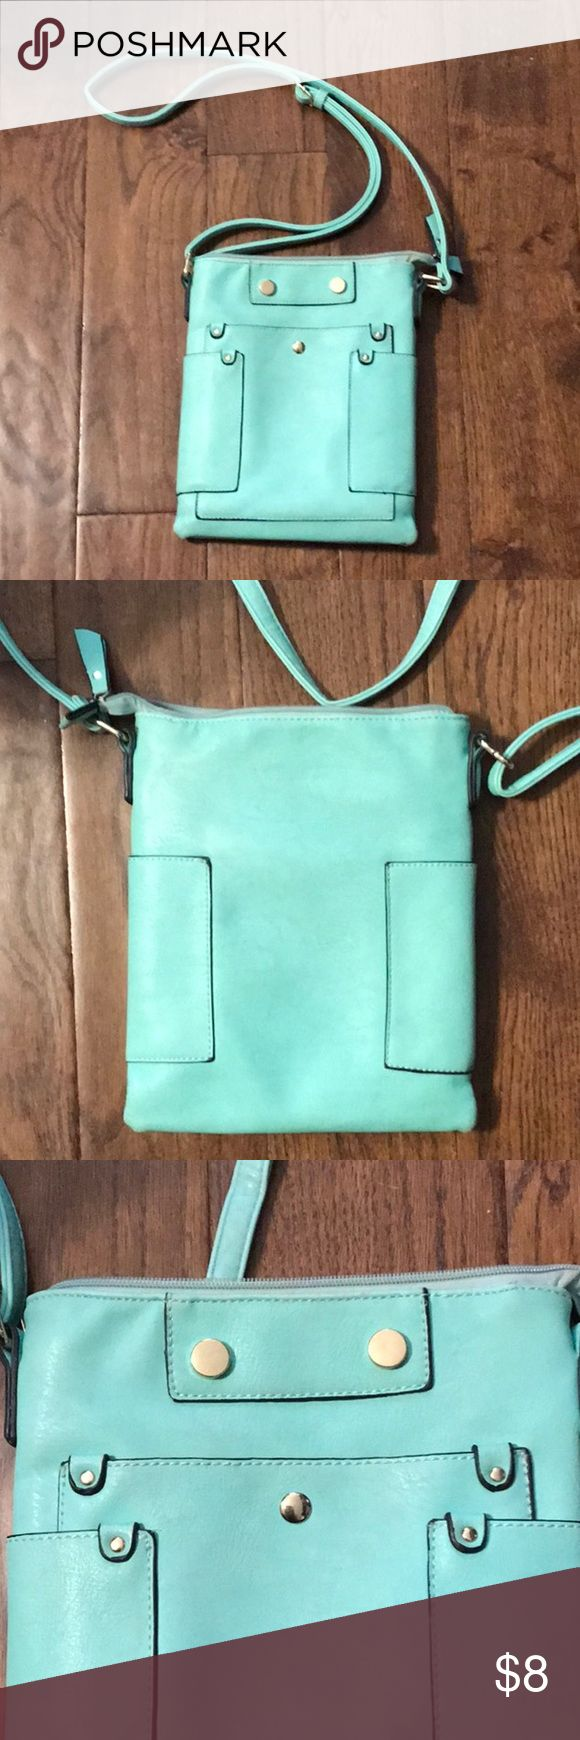 Teal purse Super cute! The inside looks great, only wear I could find was on the bottom of the purse, see pictures. Has a magnetic pocket on the front great for holding your phone miss unique Bags Crossbody Bags